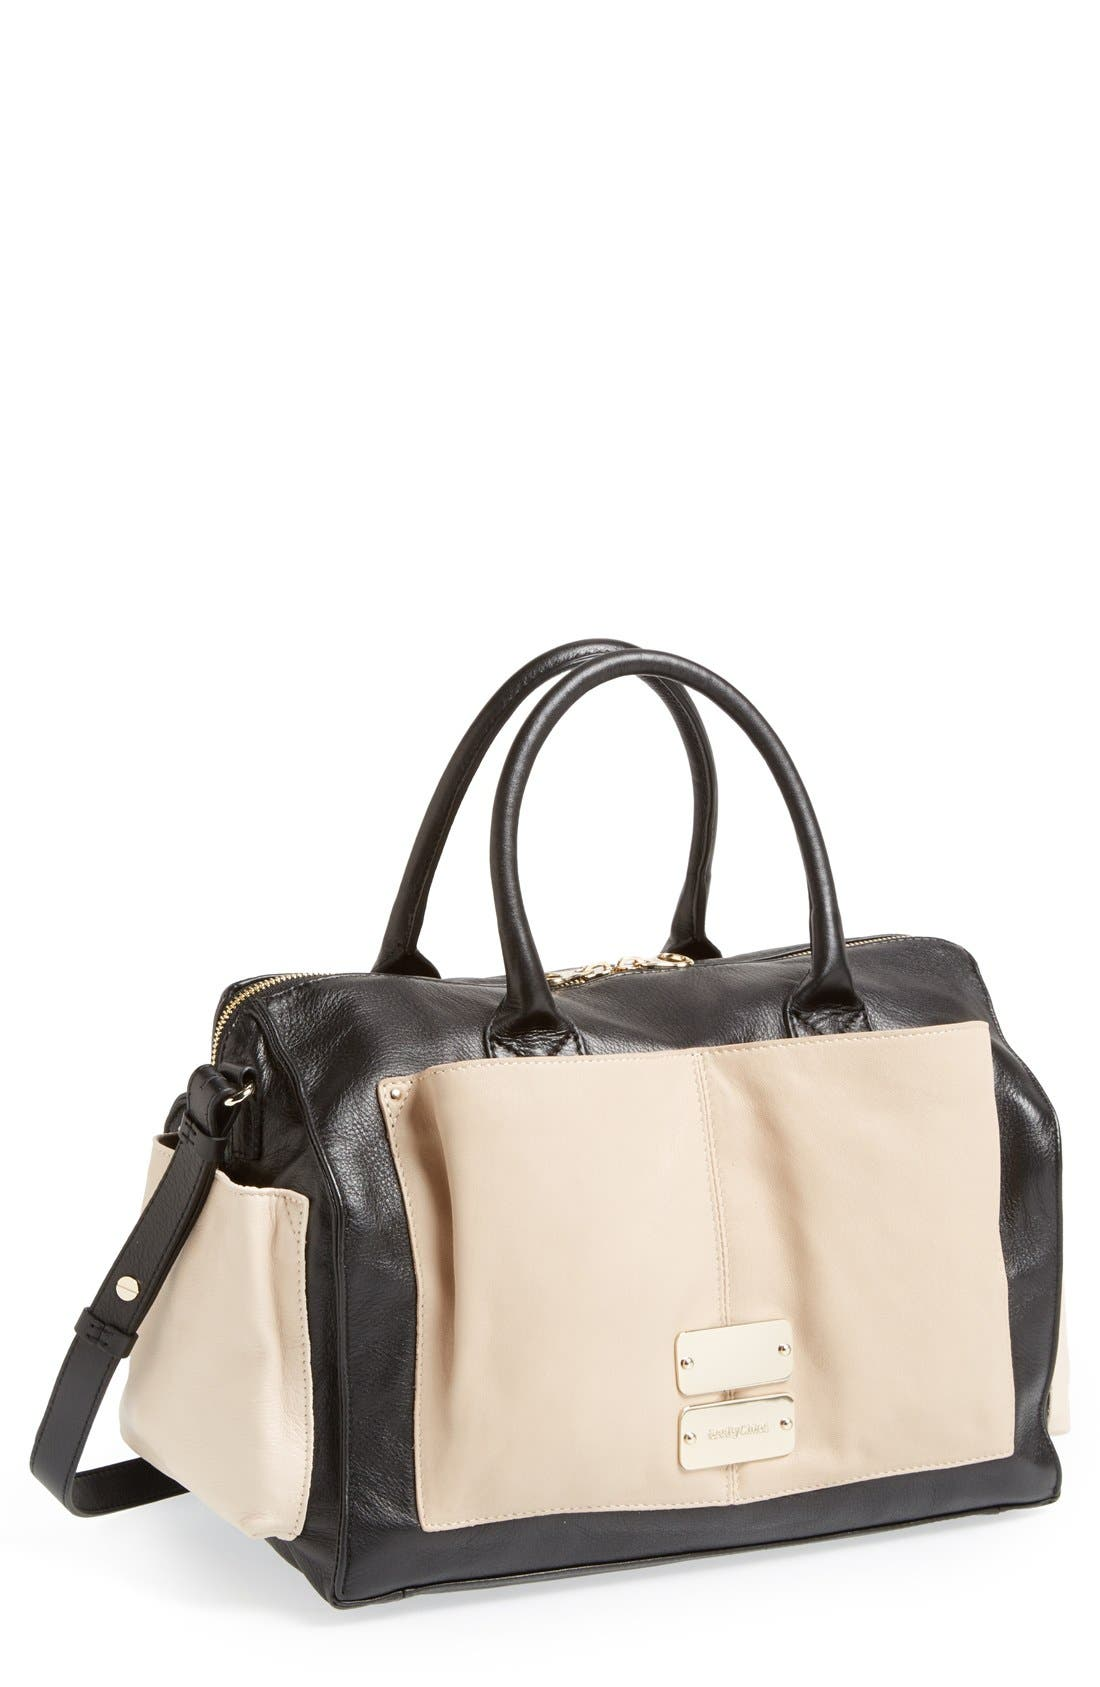 Main Image - See by Chloé 'Nellie' Satchel